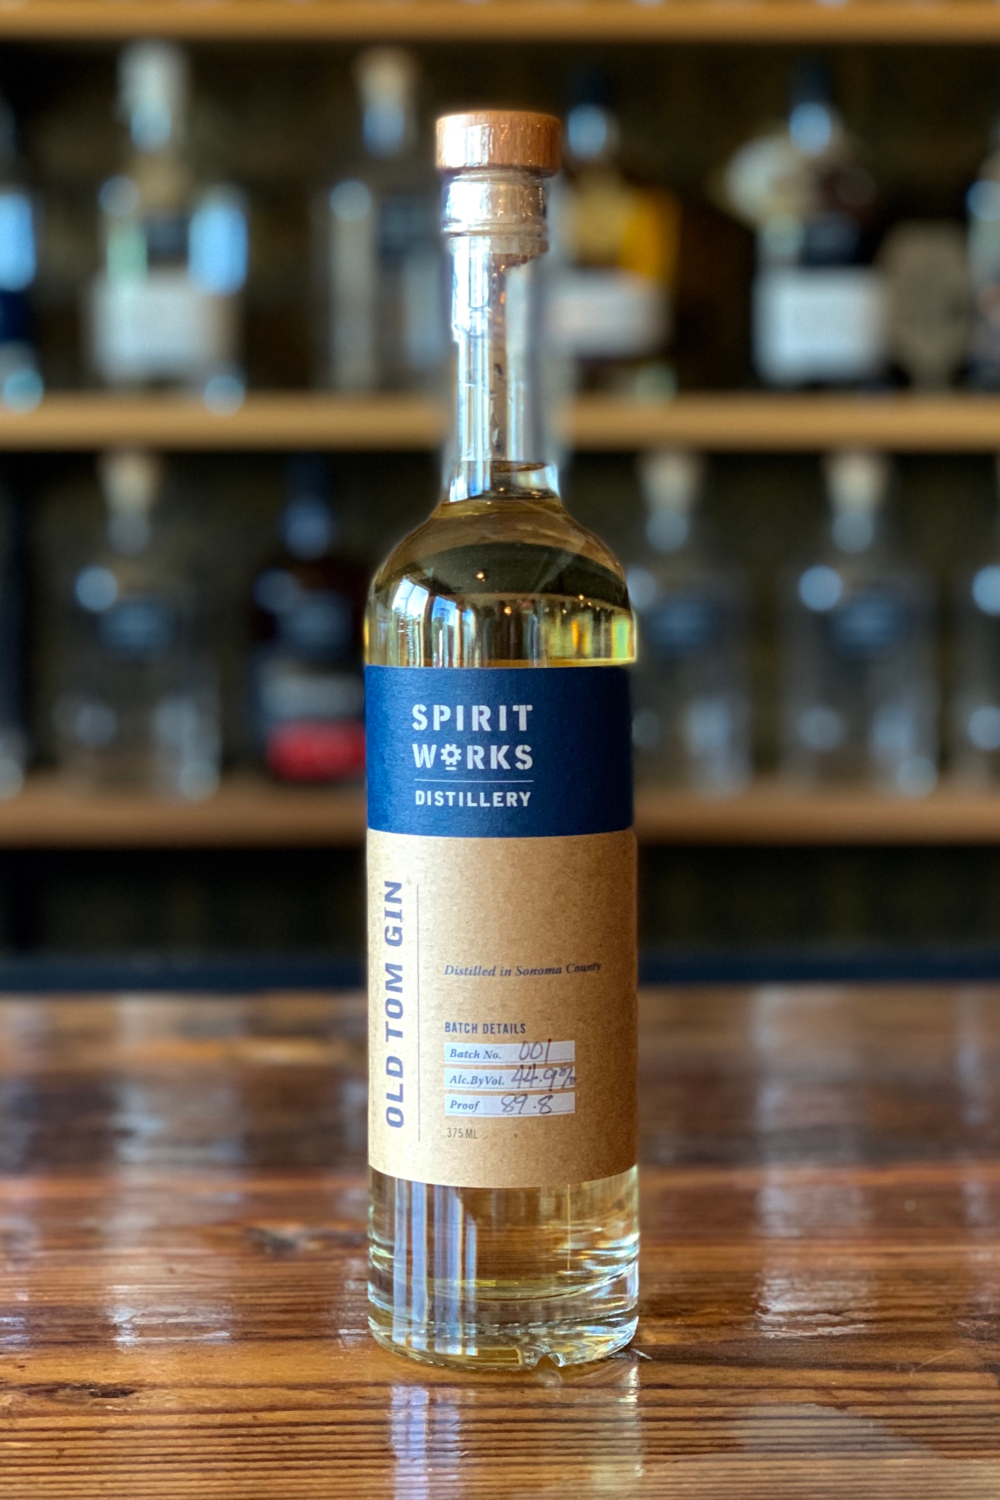 spirit-works-distillery-old-tom-gin.jpg